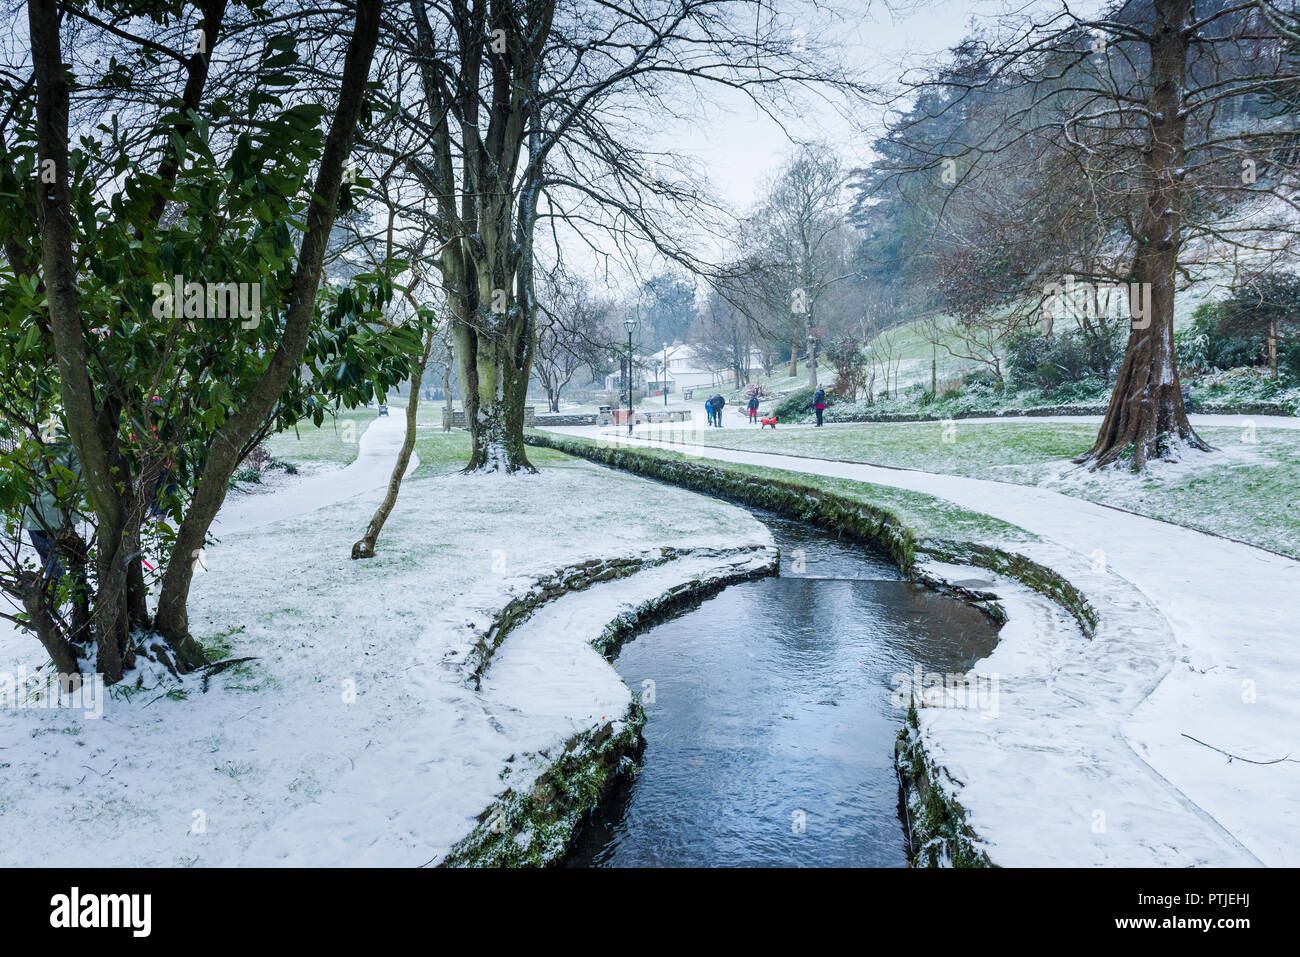 Snow falling in Trenance Gardens in Newquay in Cornwall. - Stock Image